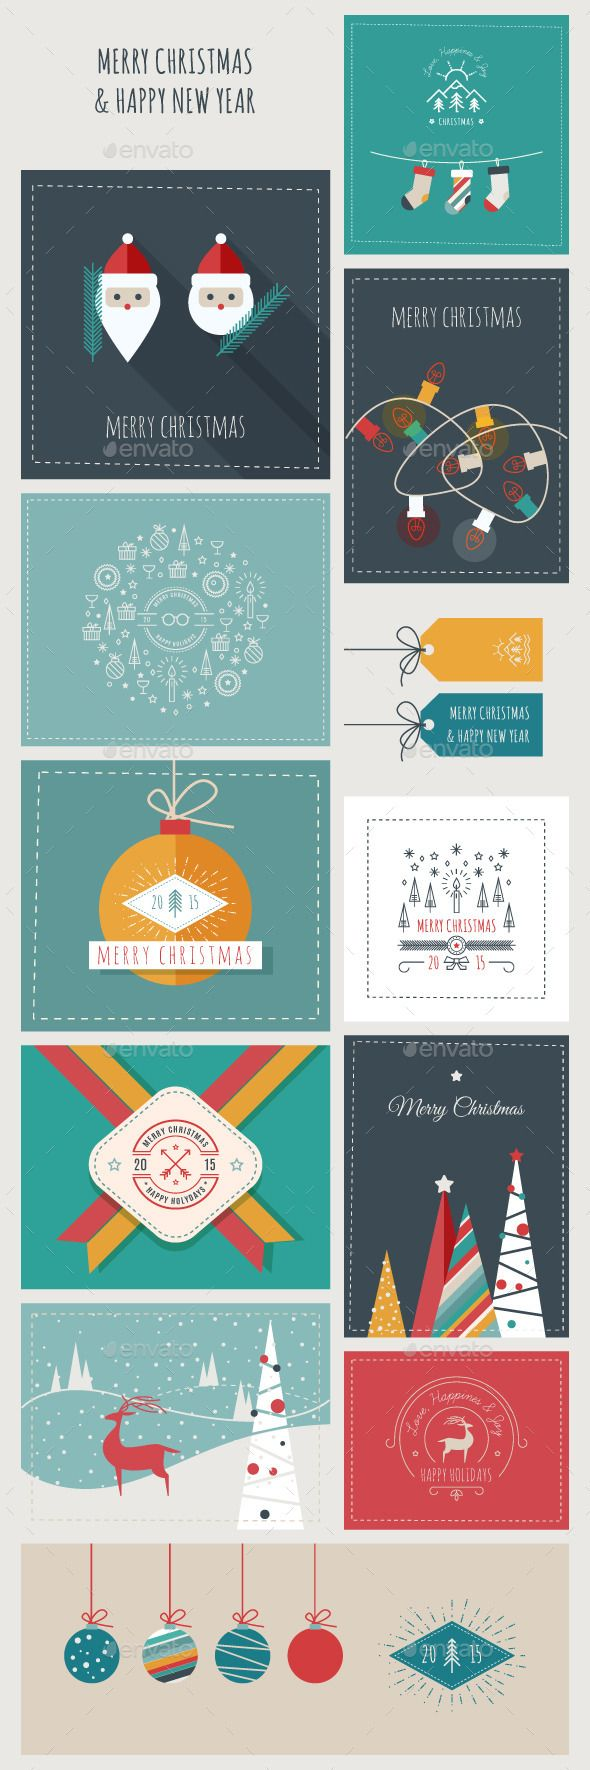 New Year and Christmas Greeting Cards and Banners Template